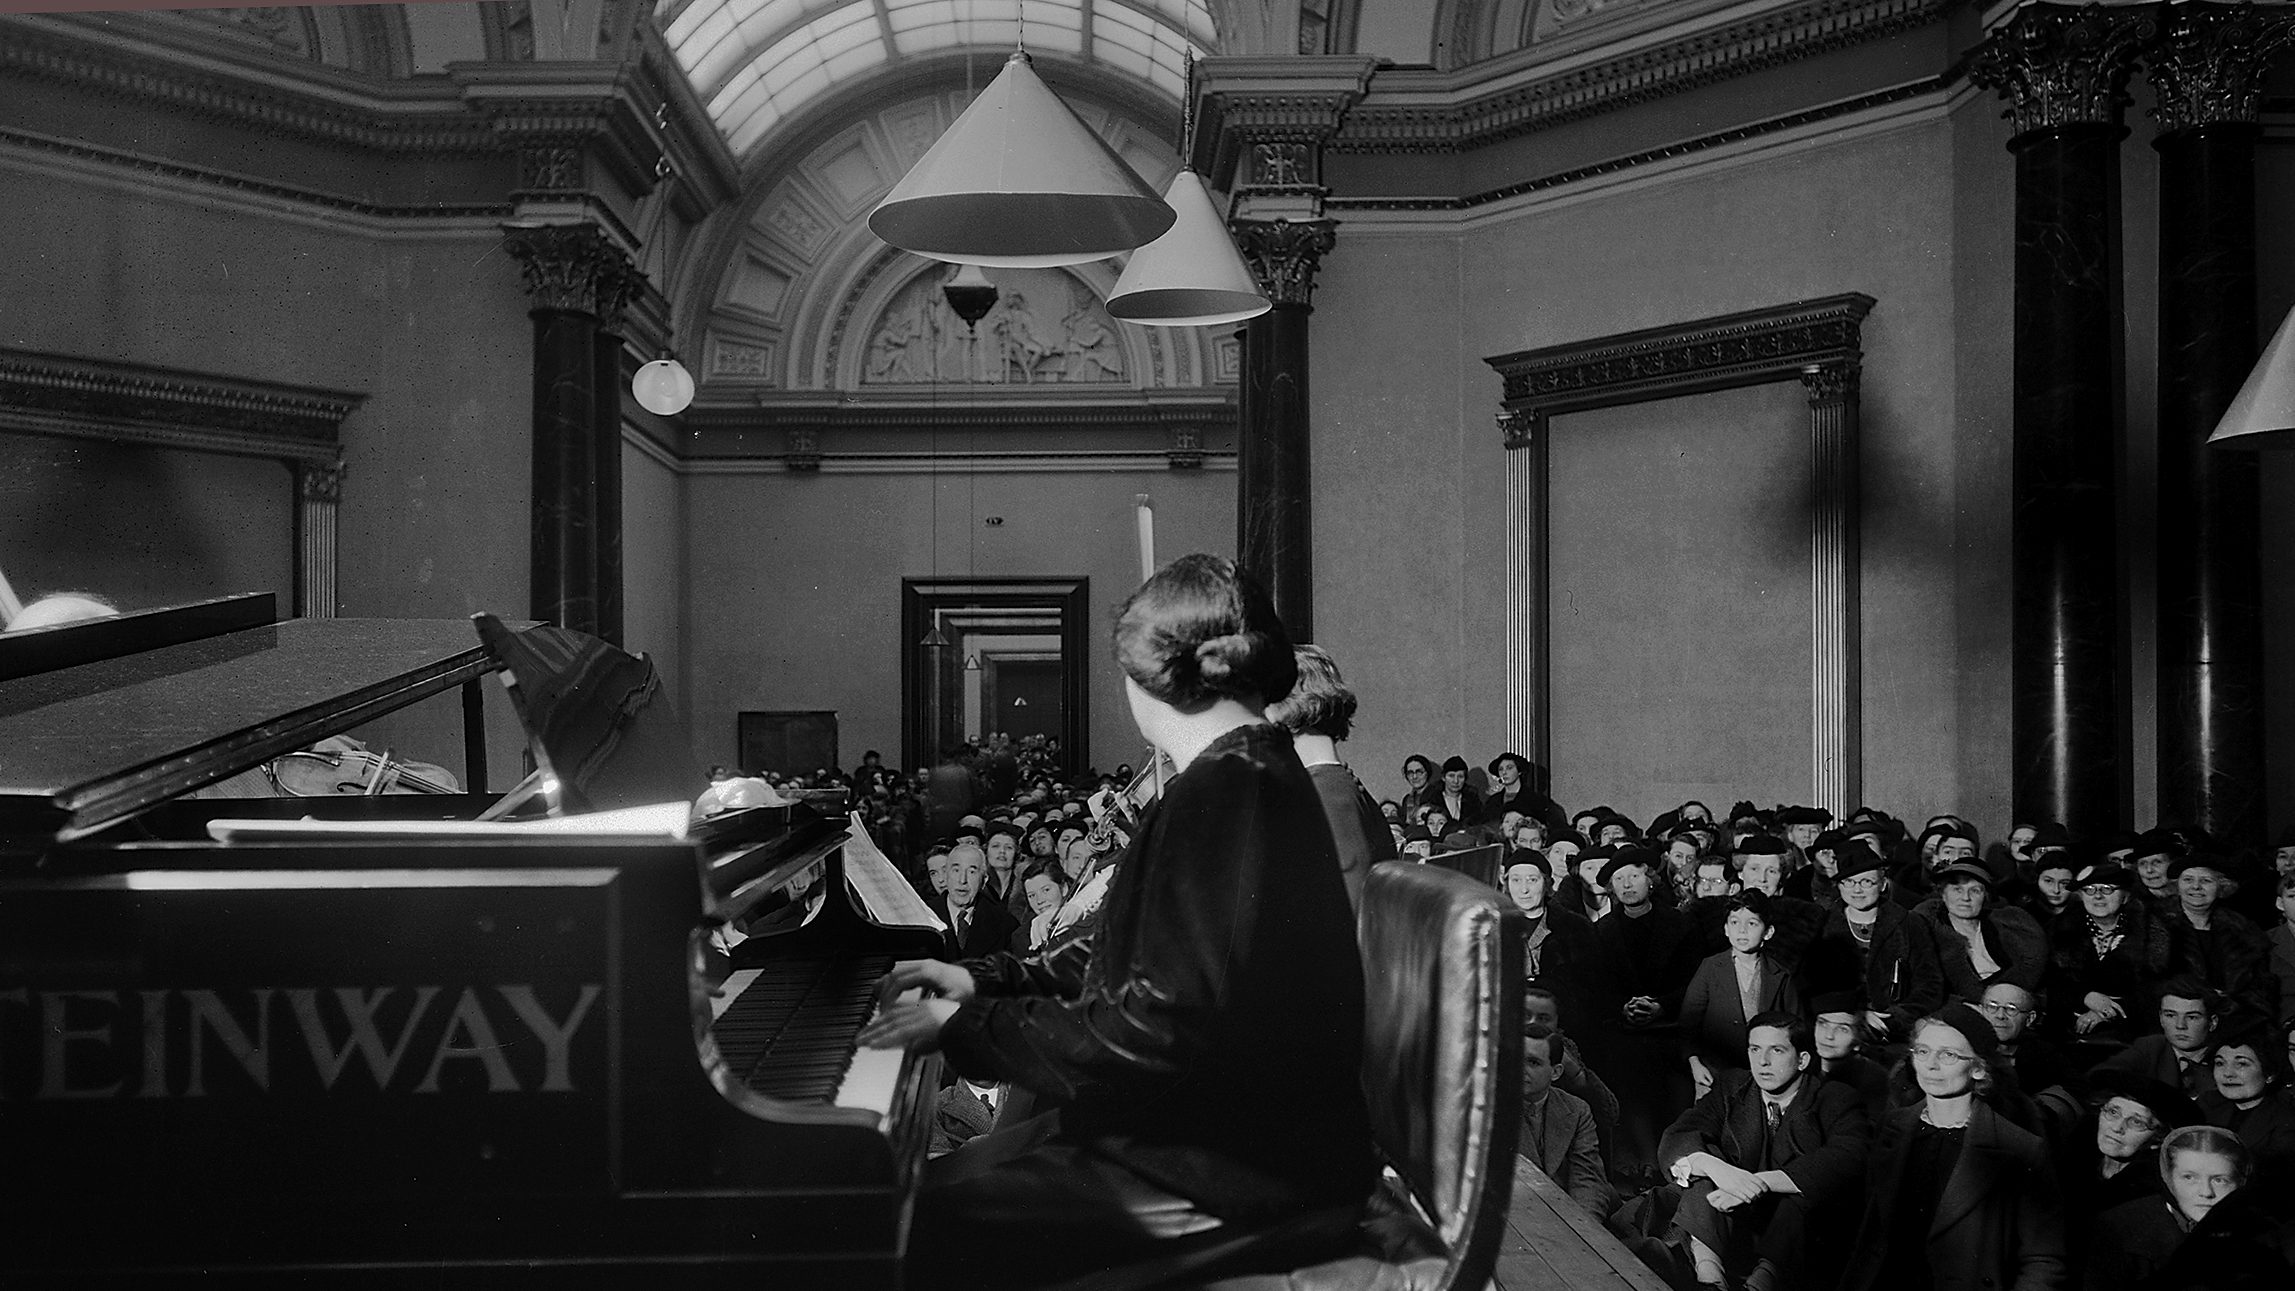 Myra Hess performing in the National Gallery during the second world war